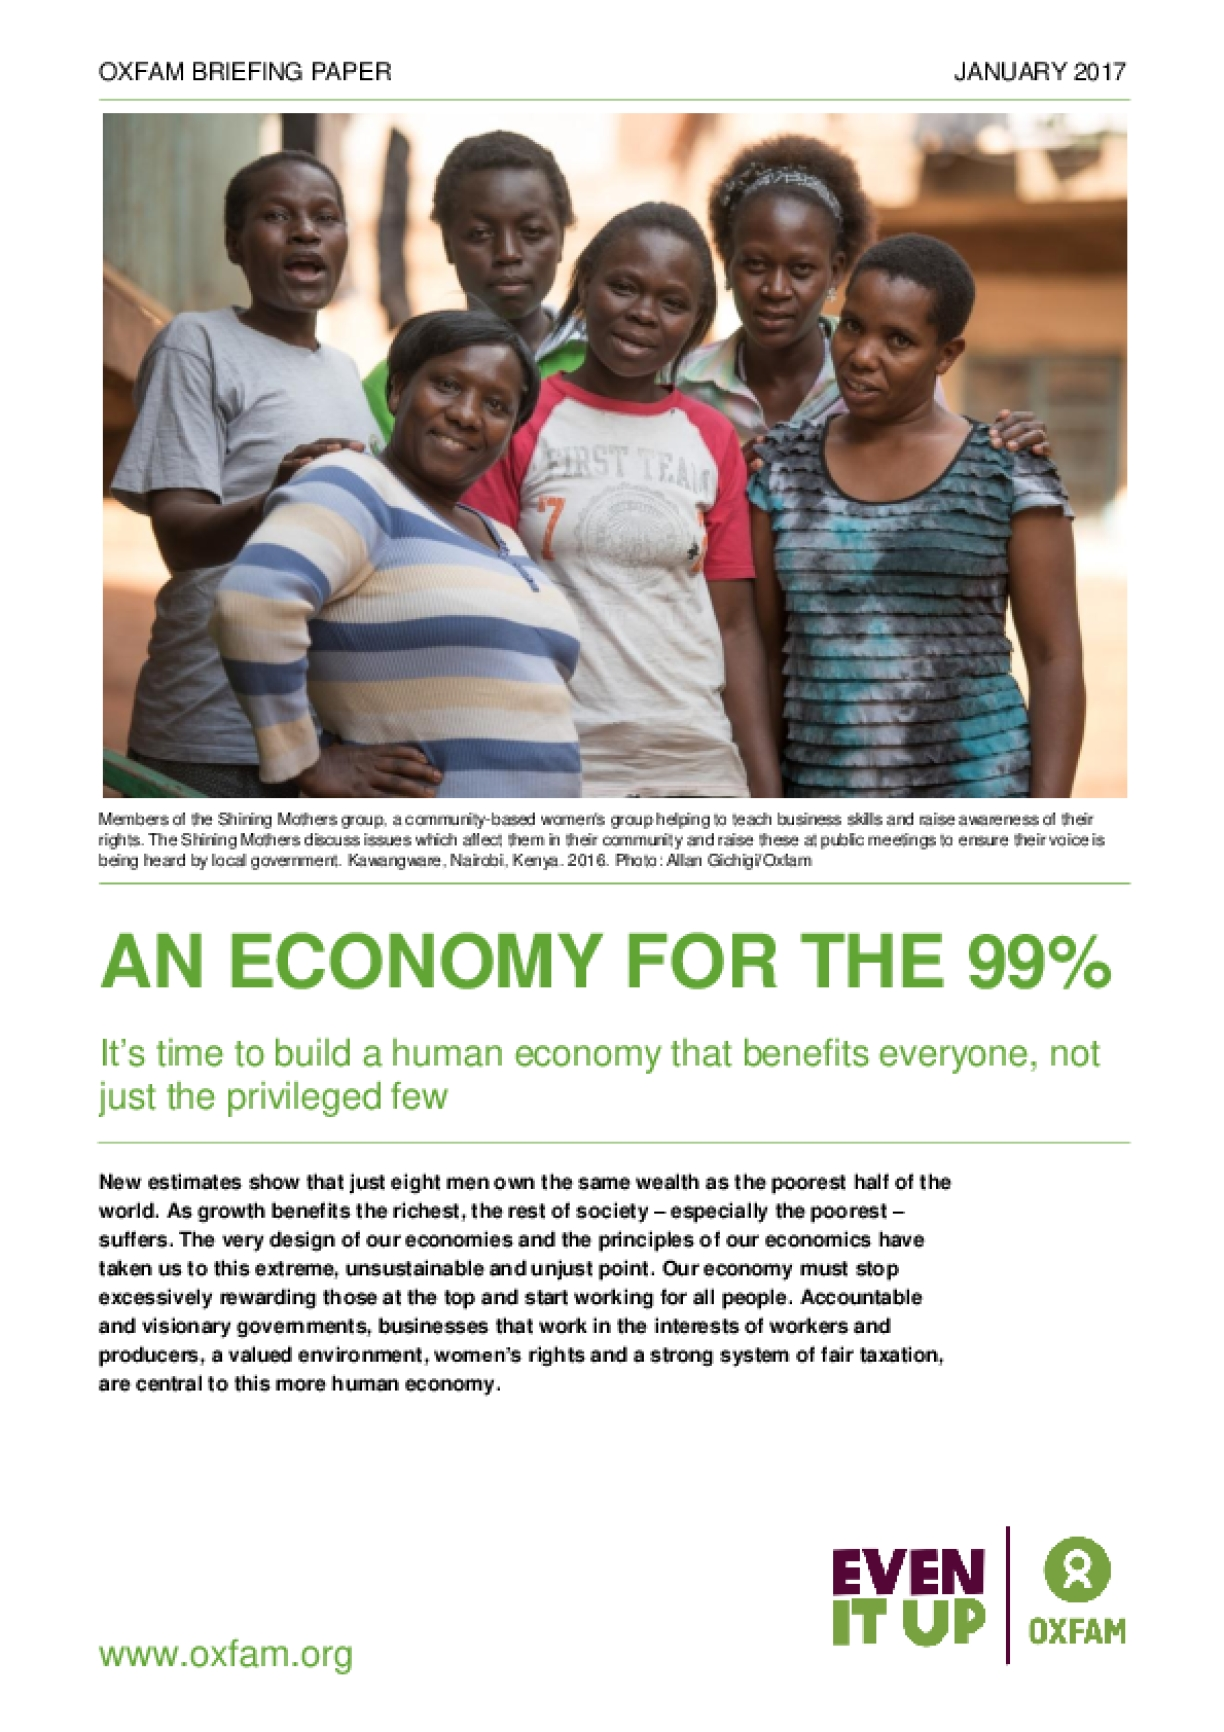 An Economy for the 99%: It's Time to Build a Human Economy That Benefits Everyone, Not Just the Privileged Few